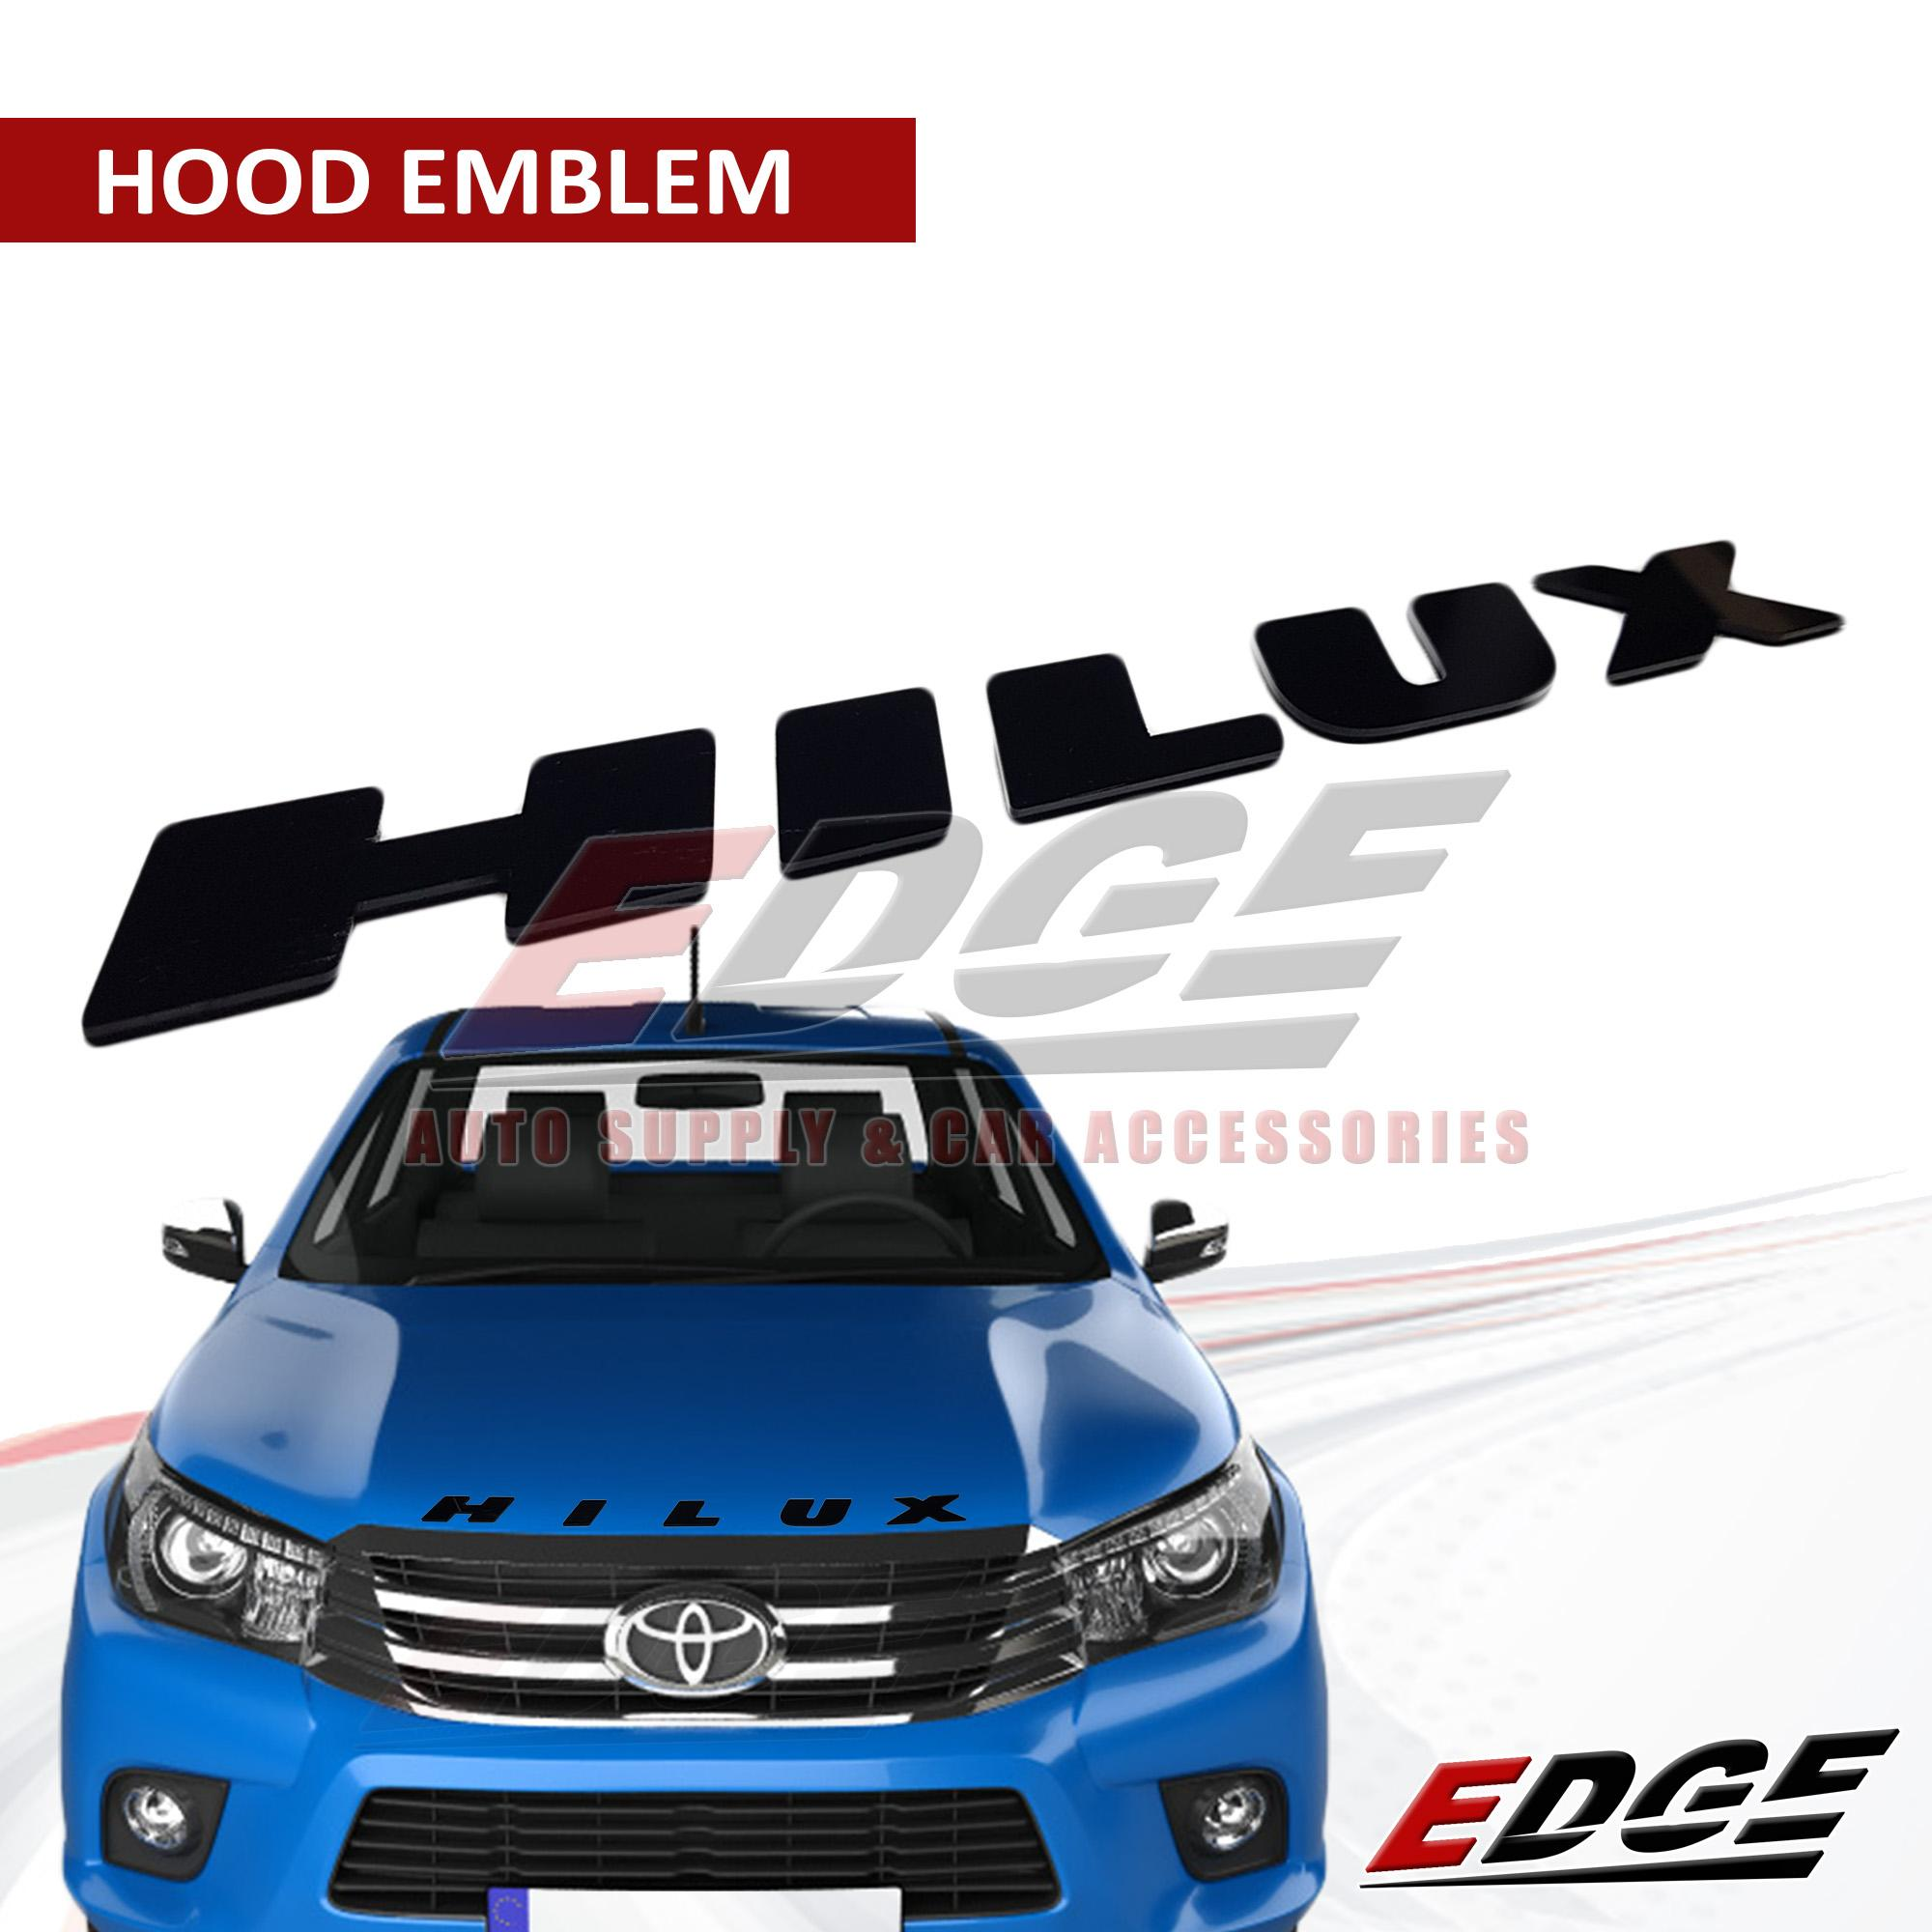 (black) Hilux Hood Emblem // Revo Vigo Conquest Toyota Trd Adhesive Ready Stick-On Logo Symbol Sign 3d Racing Development Car Displacement Auto Exterior Accessories Trunk Rear Hood Fender Badge Sticker Type Acrylic By Edge Auto Supply & Car Accessories.